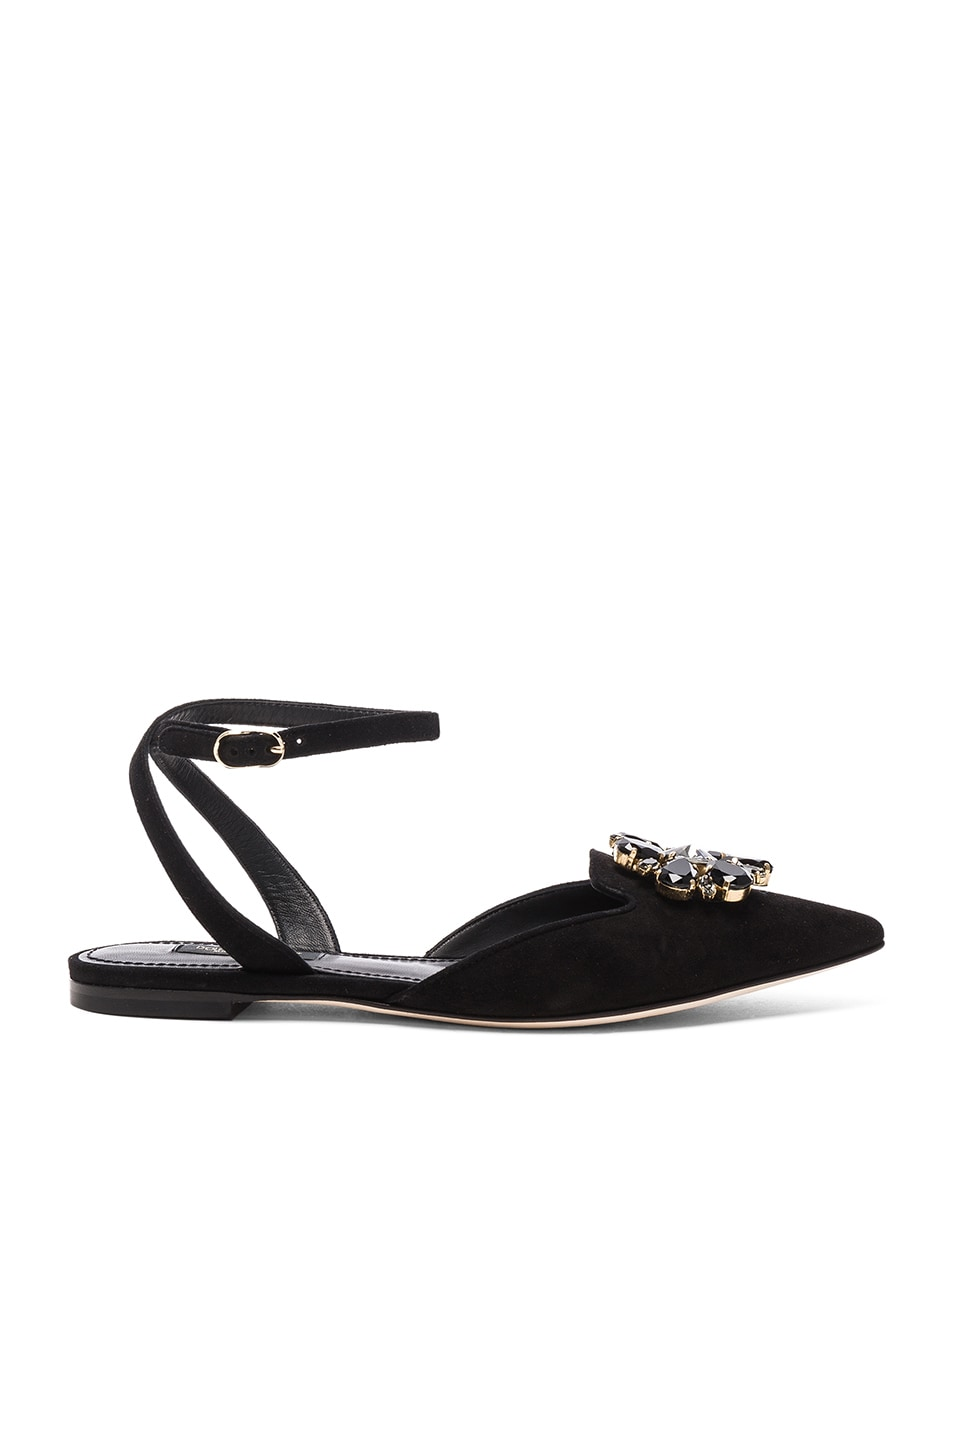 Image 1 of Dolce & Gabbana Suede Belucci Flats in Black